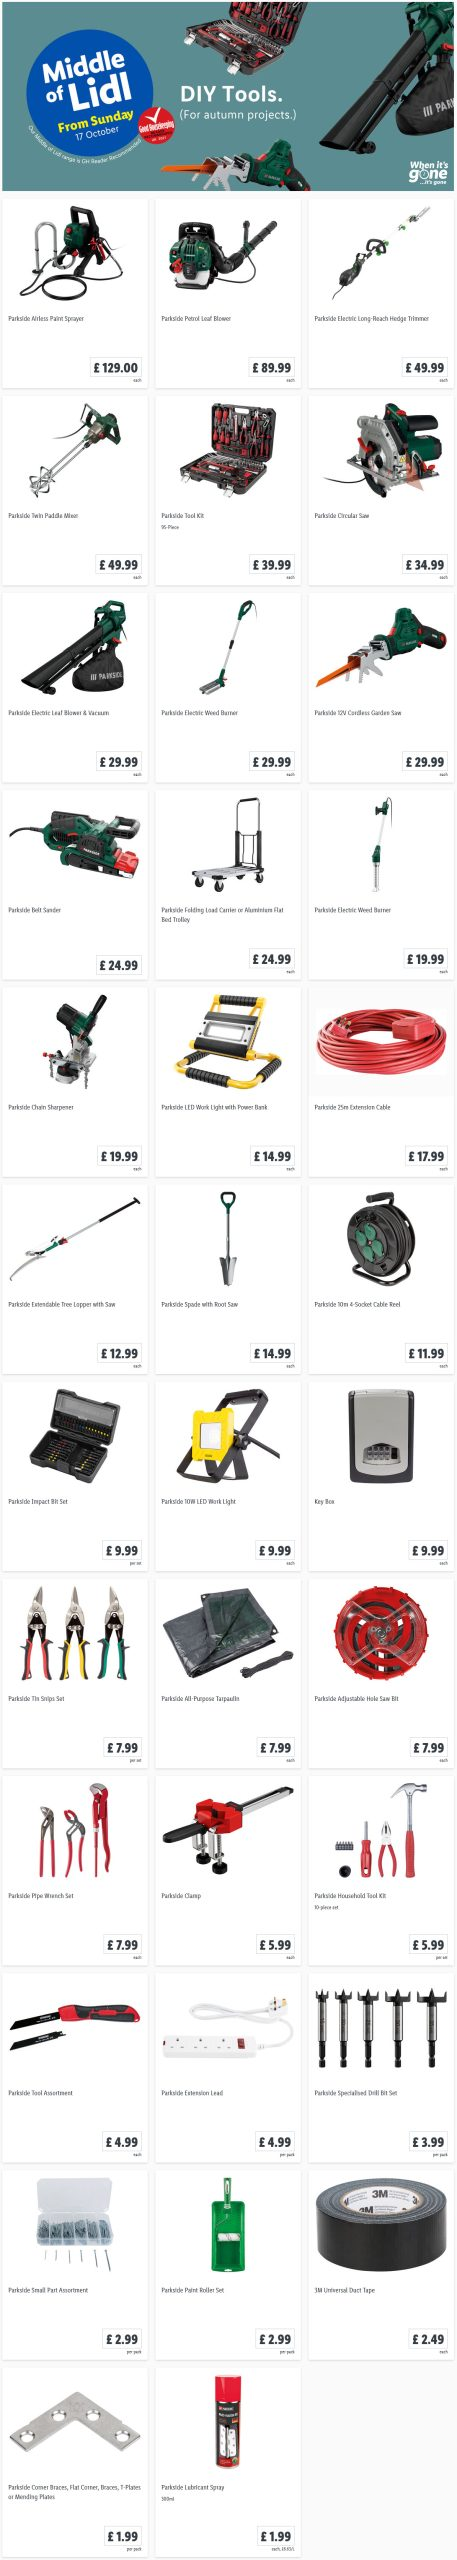 LIDL Sunday Offers DIY Tools from 17th October 2021